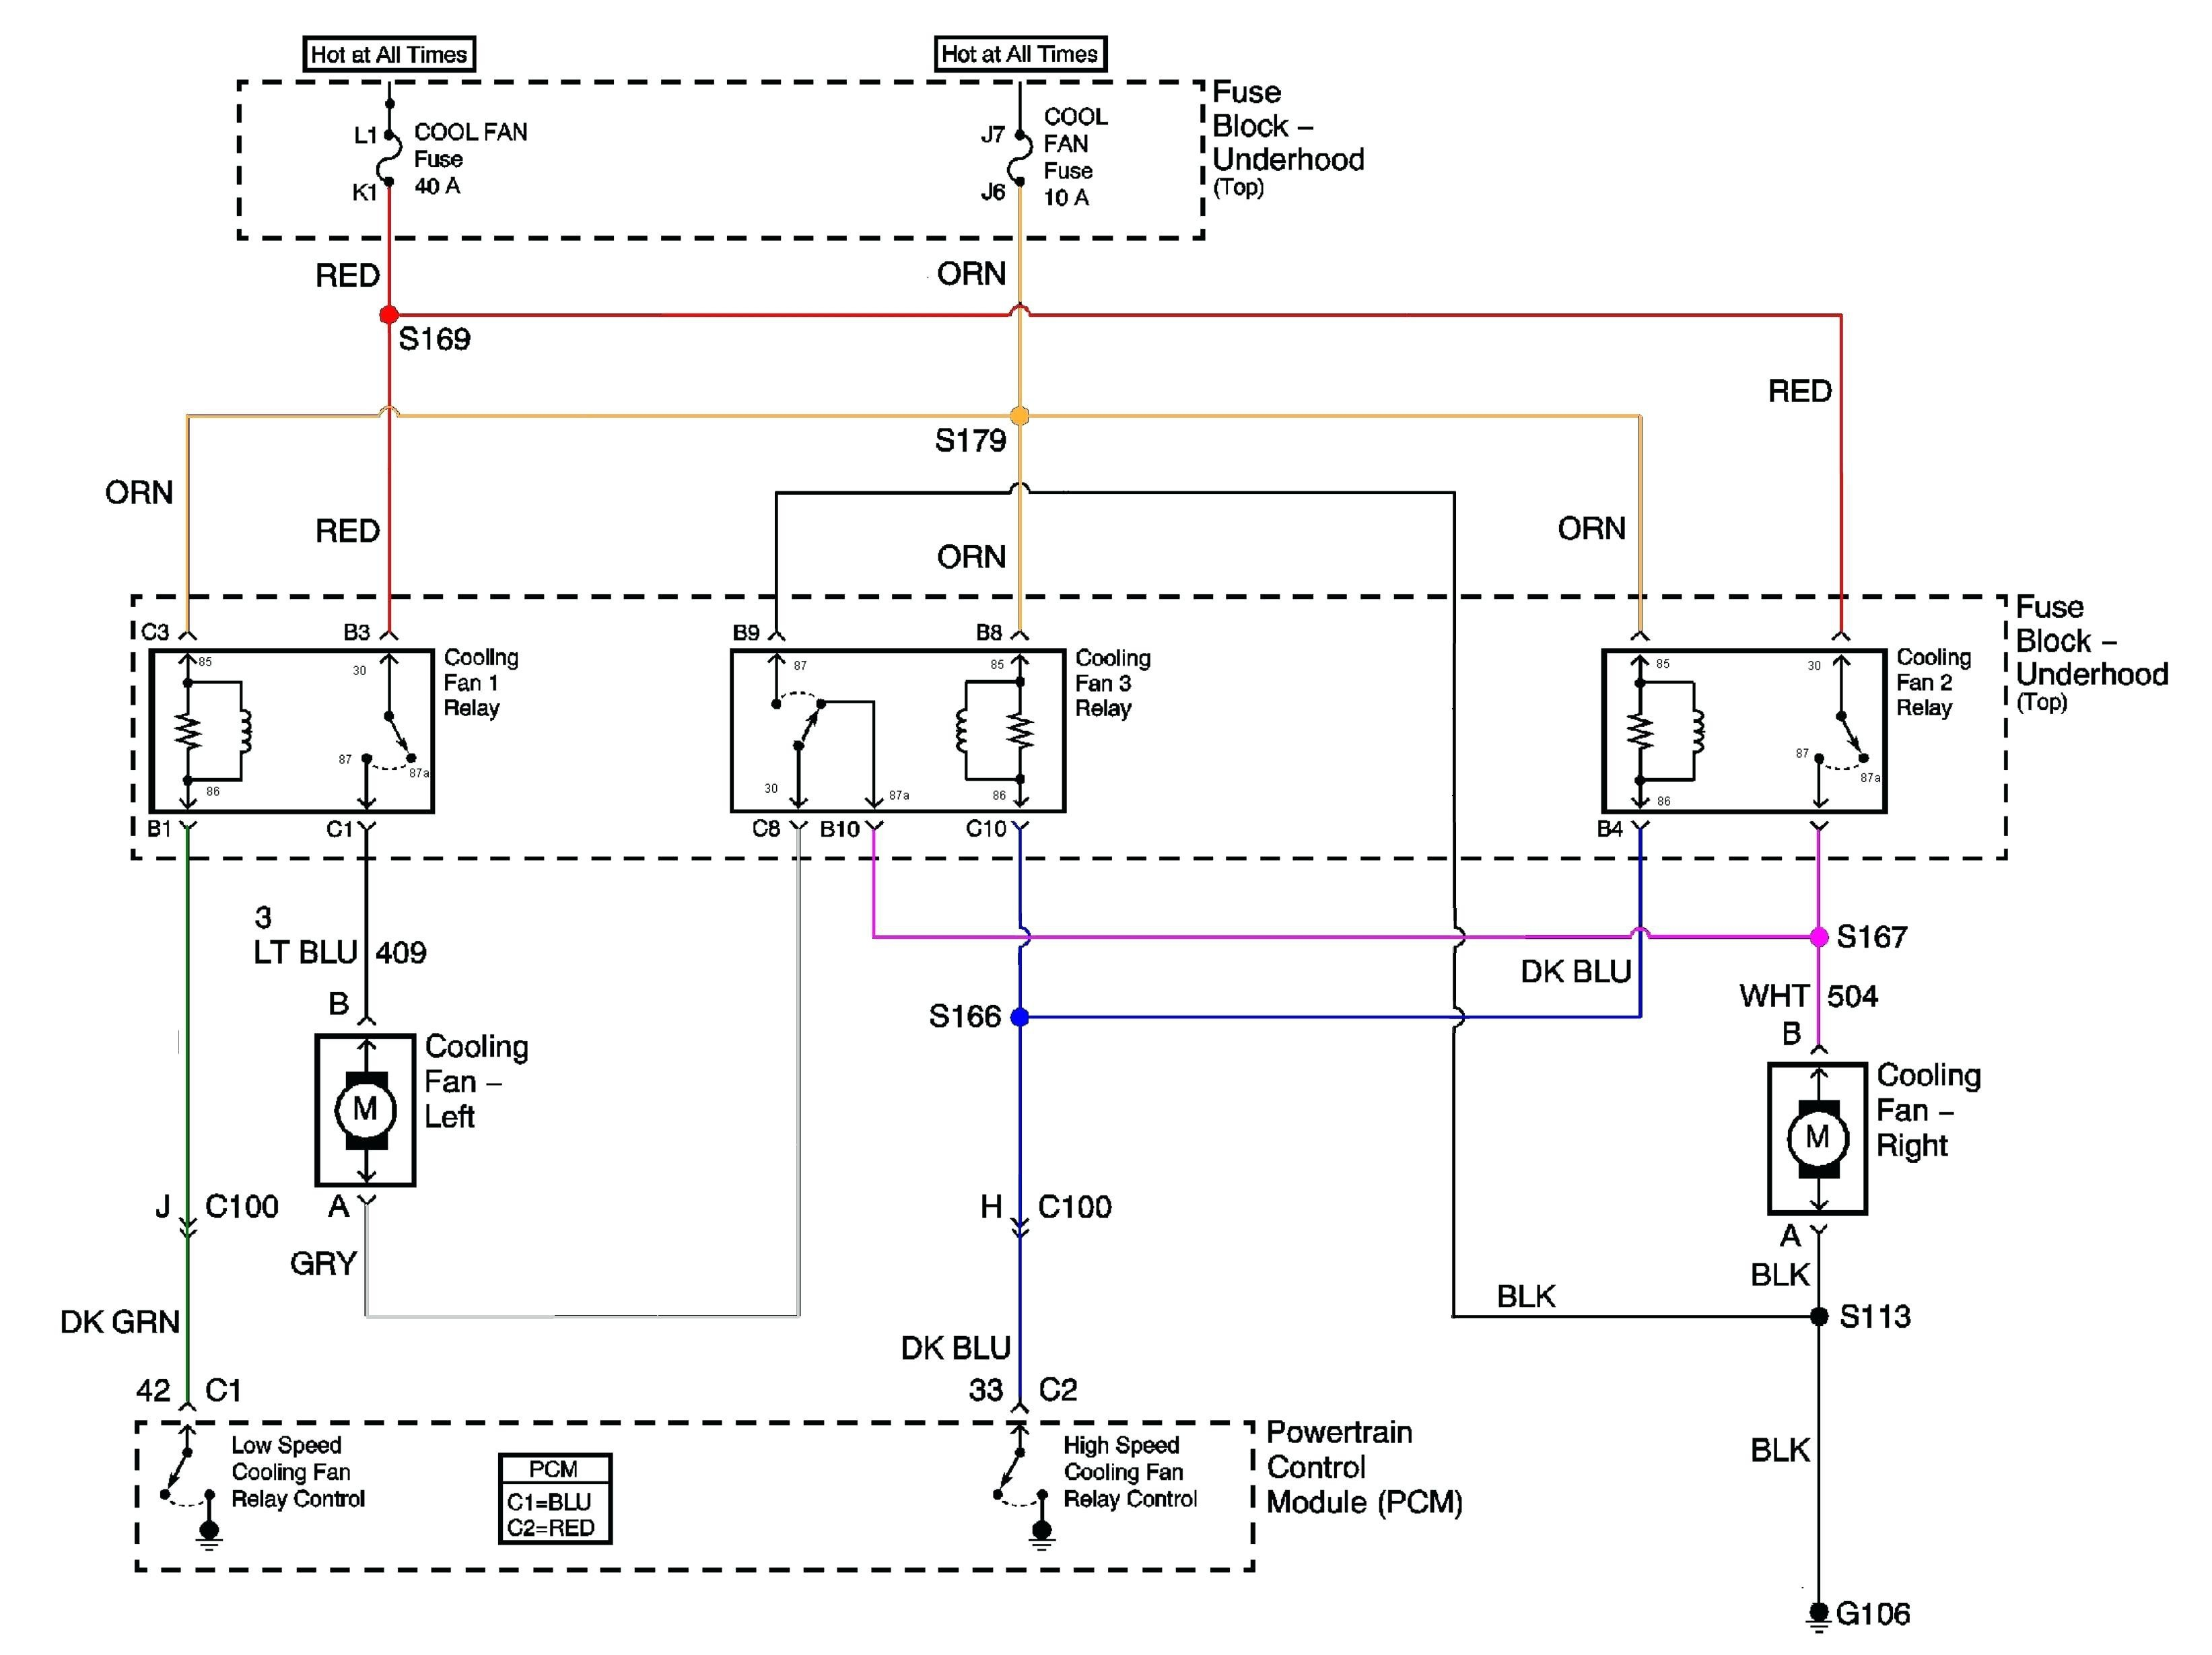 Cooling Fan Relay Wiring Diagram Beautiful Wiring Diagram Cooling Fan Relay Electrical Switch Lighting for